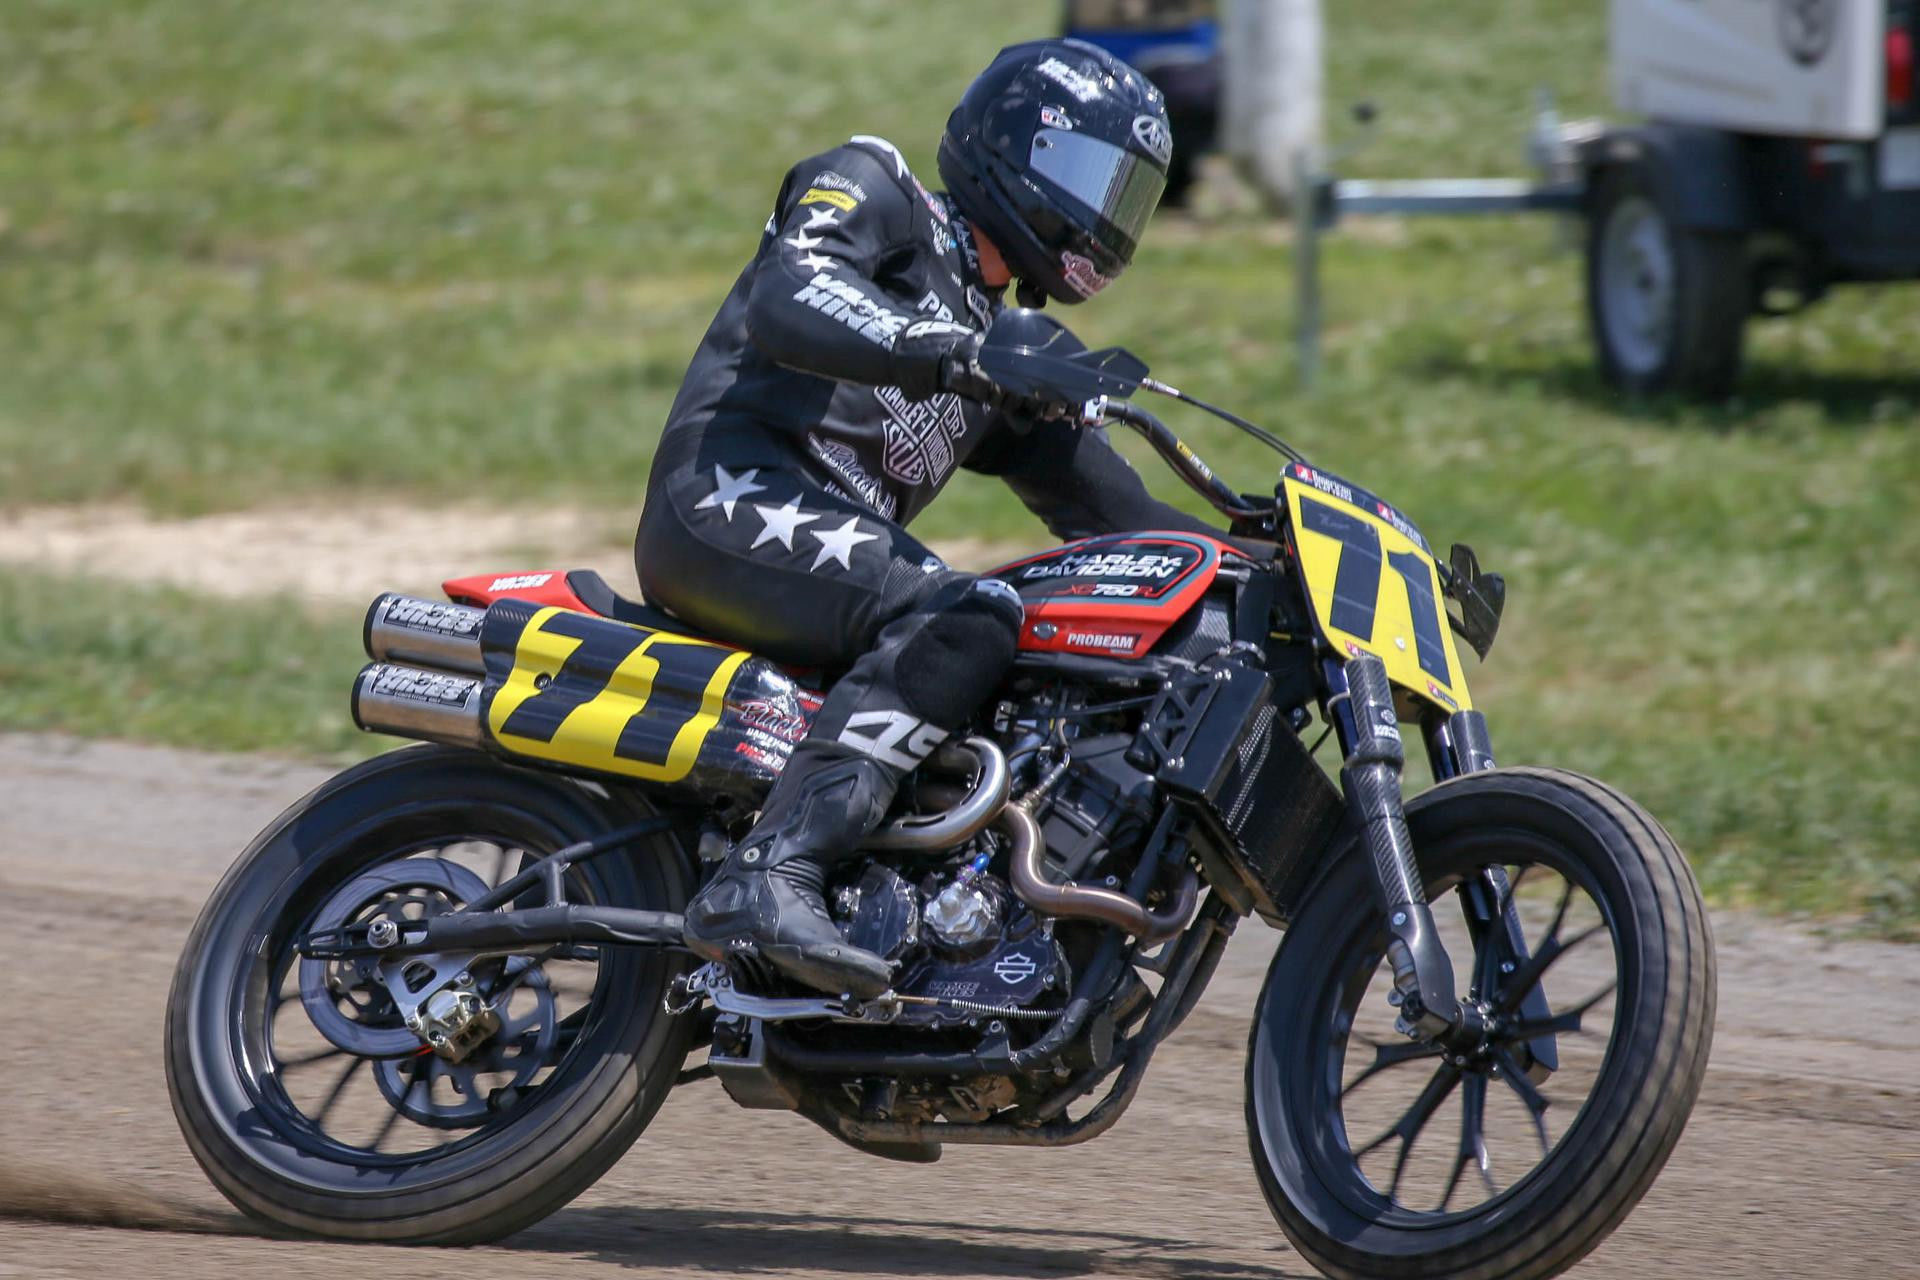 James Rispoli (71) at speed on a Harley-Davidson XG750R. Photo by Scott Hunter, courtesy of American Flat Track.